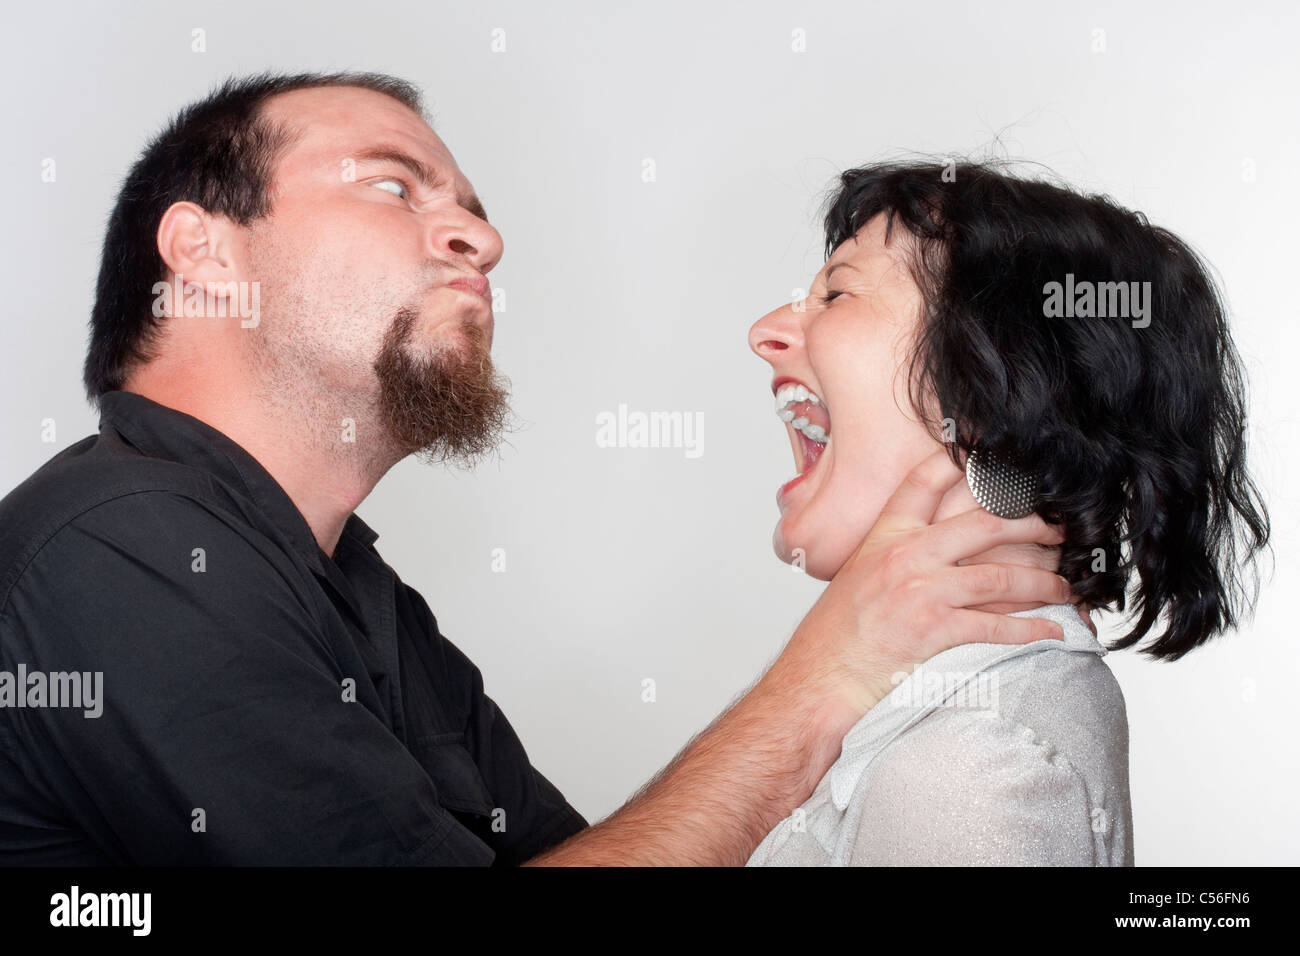 couple fighting, man abusing the woman - isolated on white - Stock Image